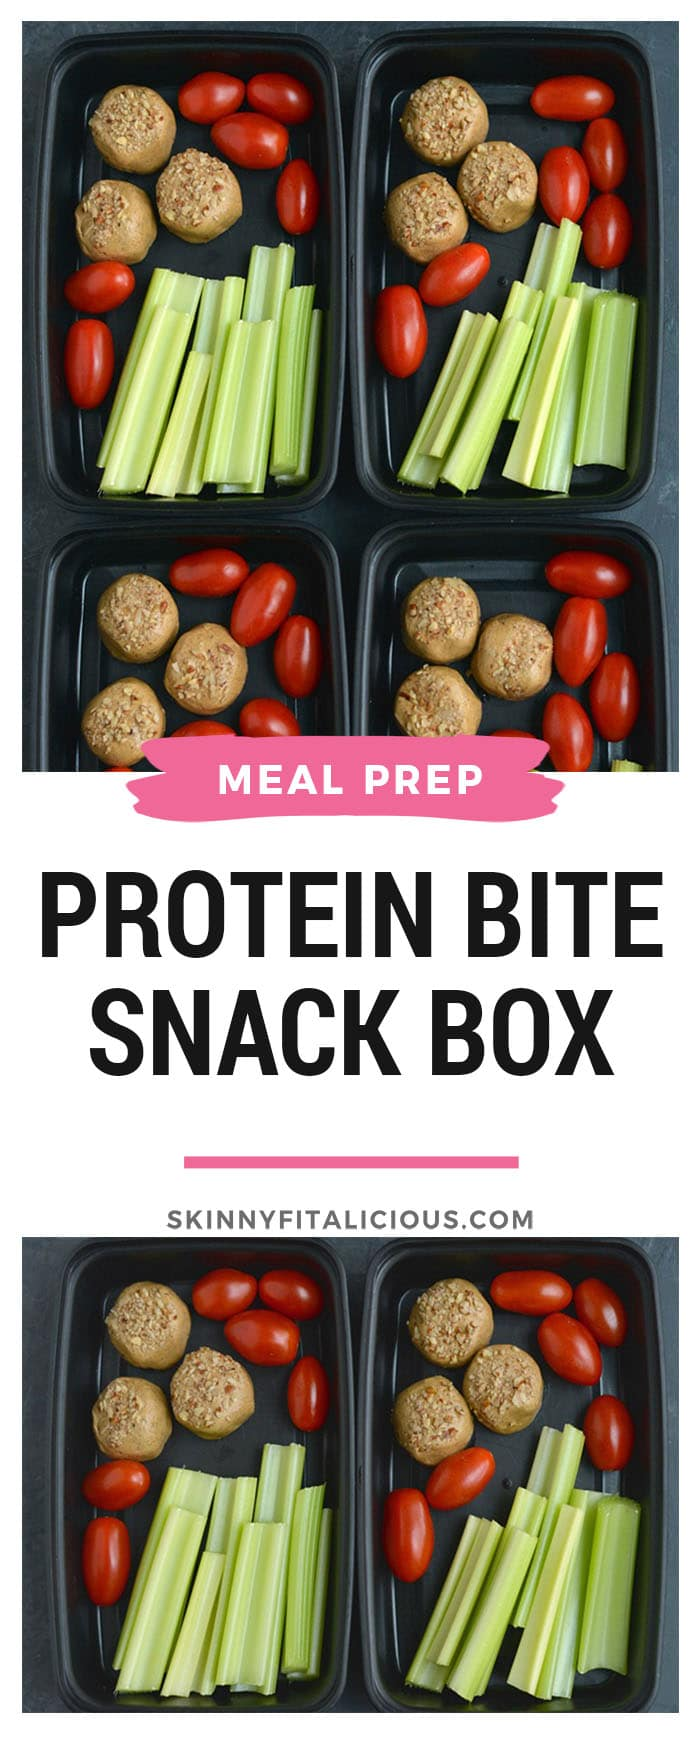 Meal Prep Protein Bite Snack Box! Snacking doesn't get easier than 3 ingredient no bake protein bites paired with fresh veggies. The perfect on the go snack boxes you can take with you anywhere! Vegan + Gluten Free + Low Carb